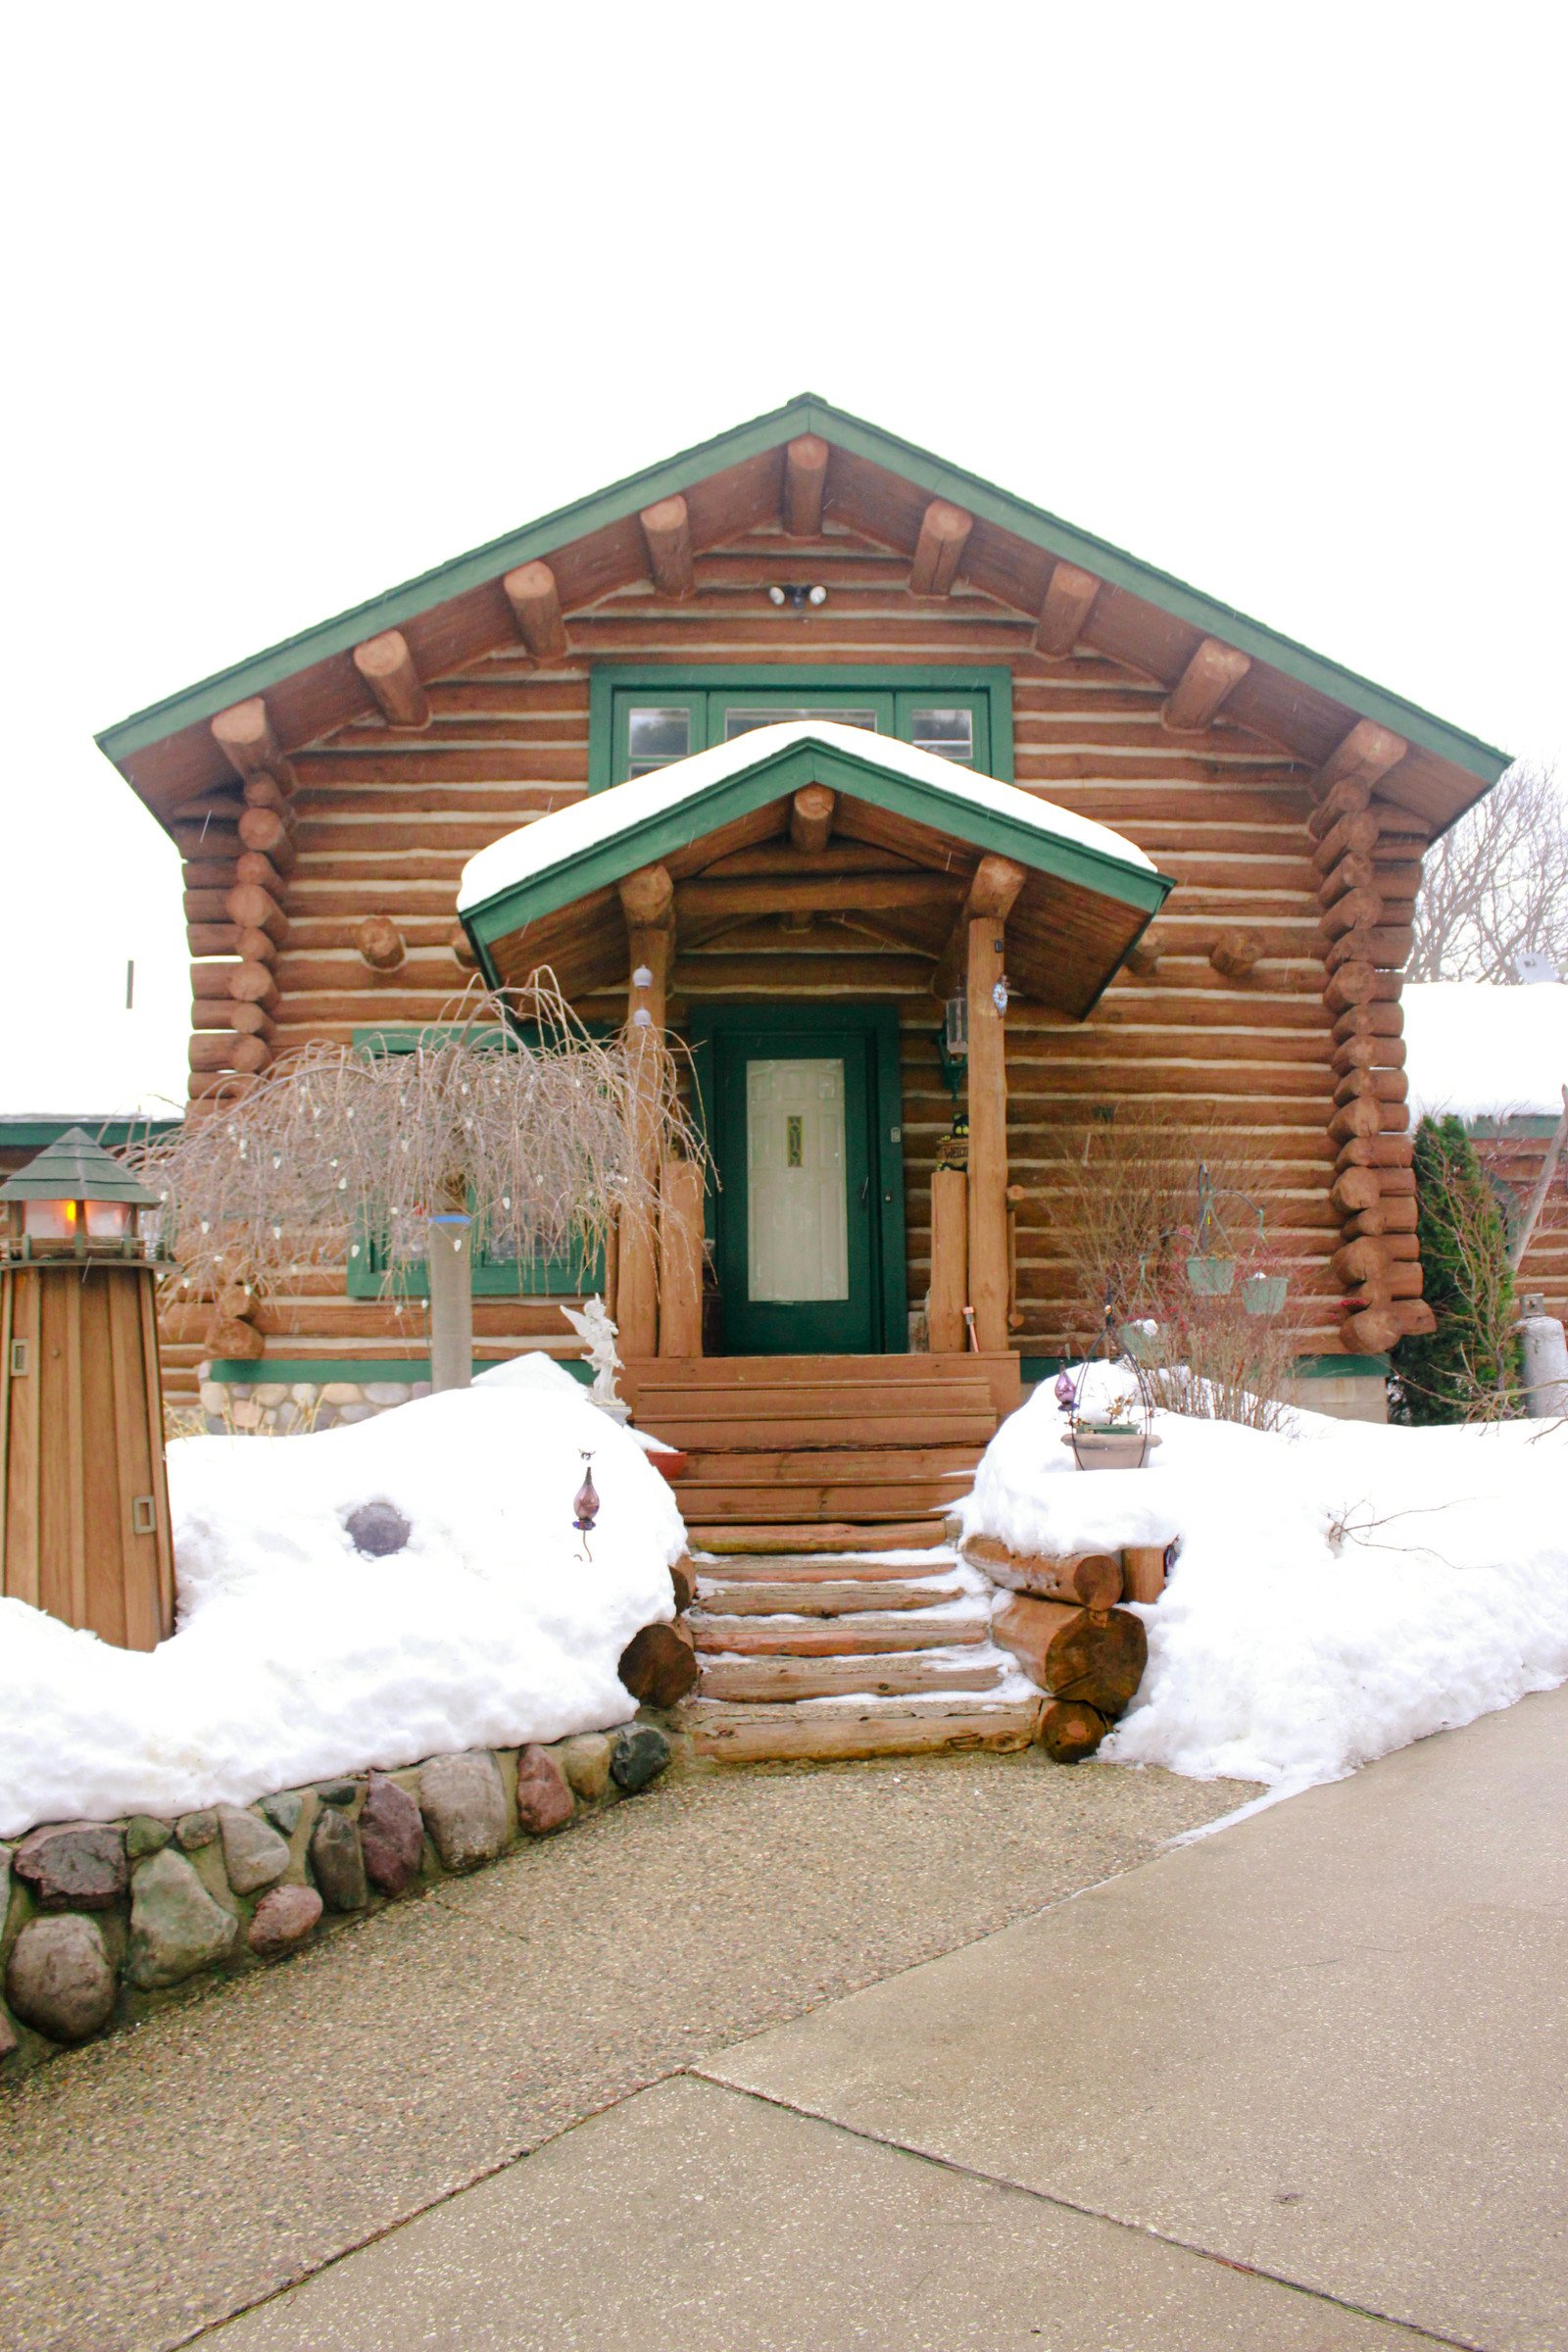 llc local item fox property companies wisconsin door portfolio management county development rental sister cabins seo services cabin design rentals web bay and top freelance michigan